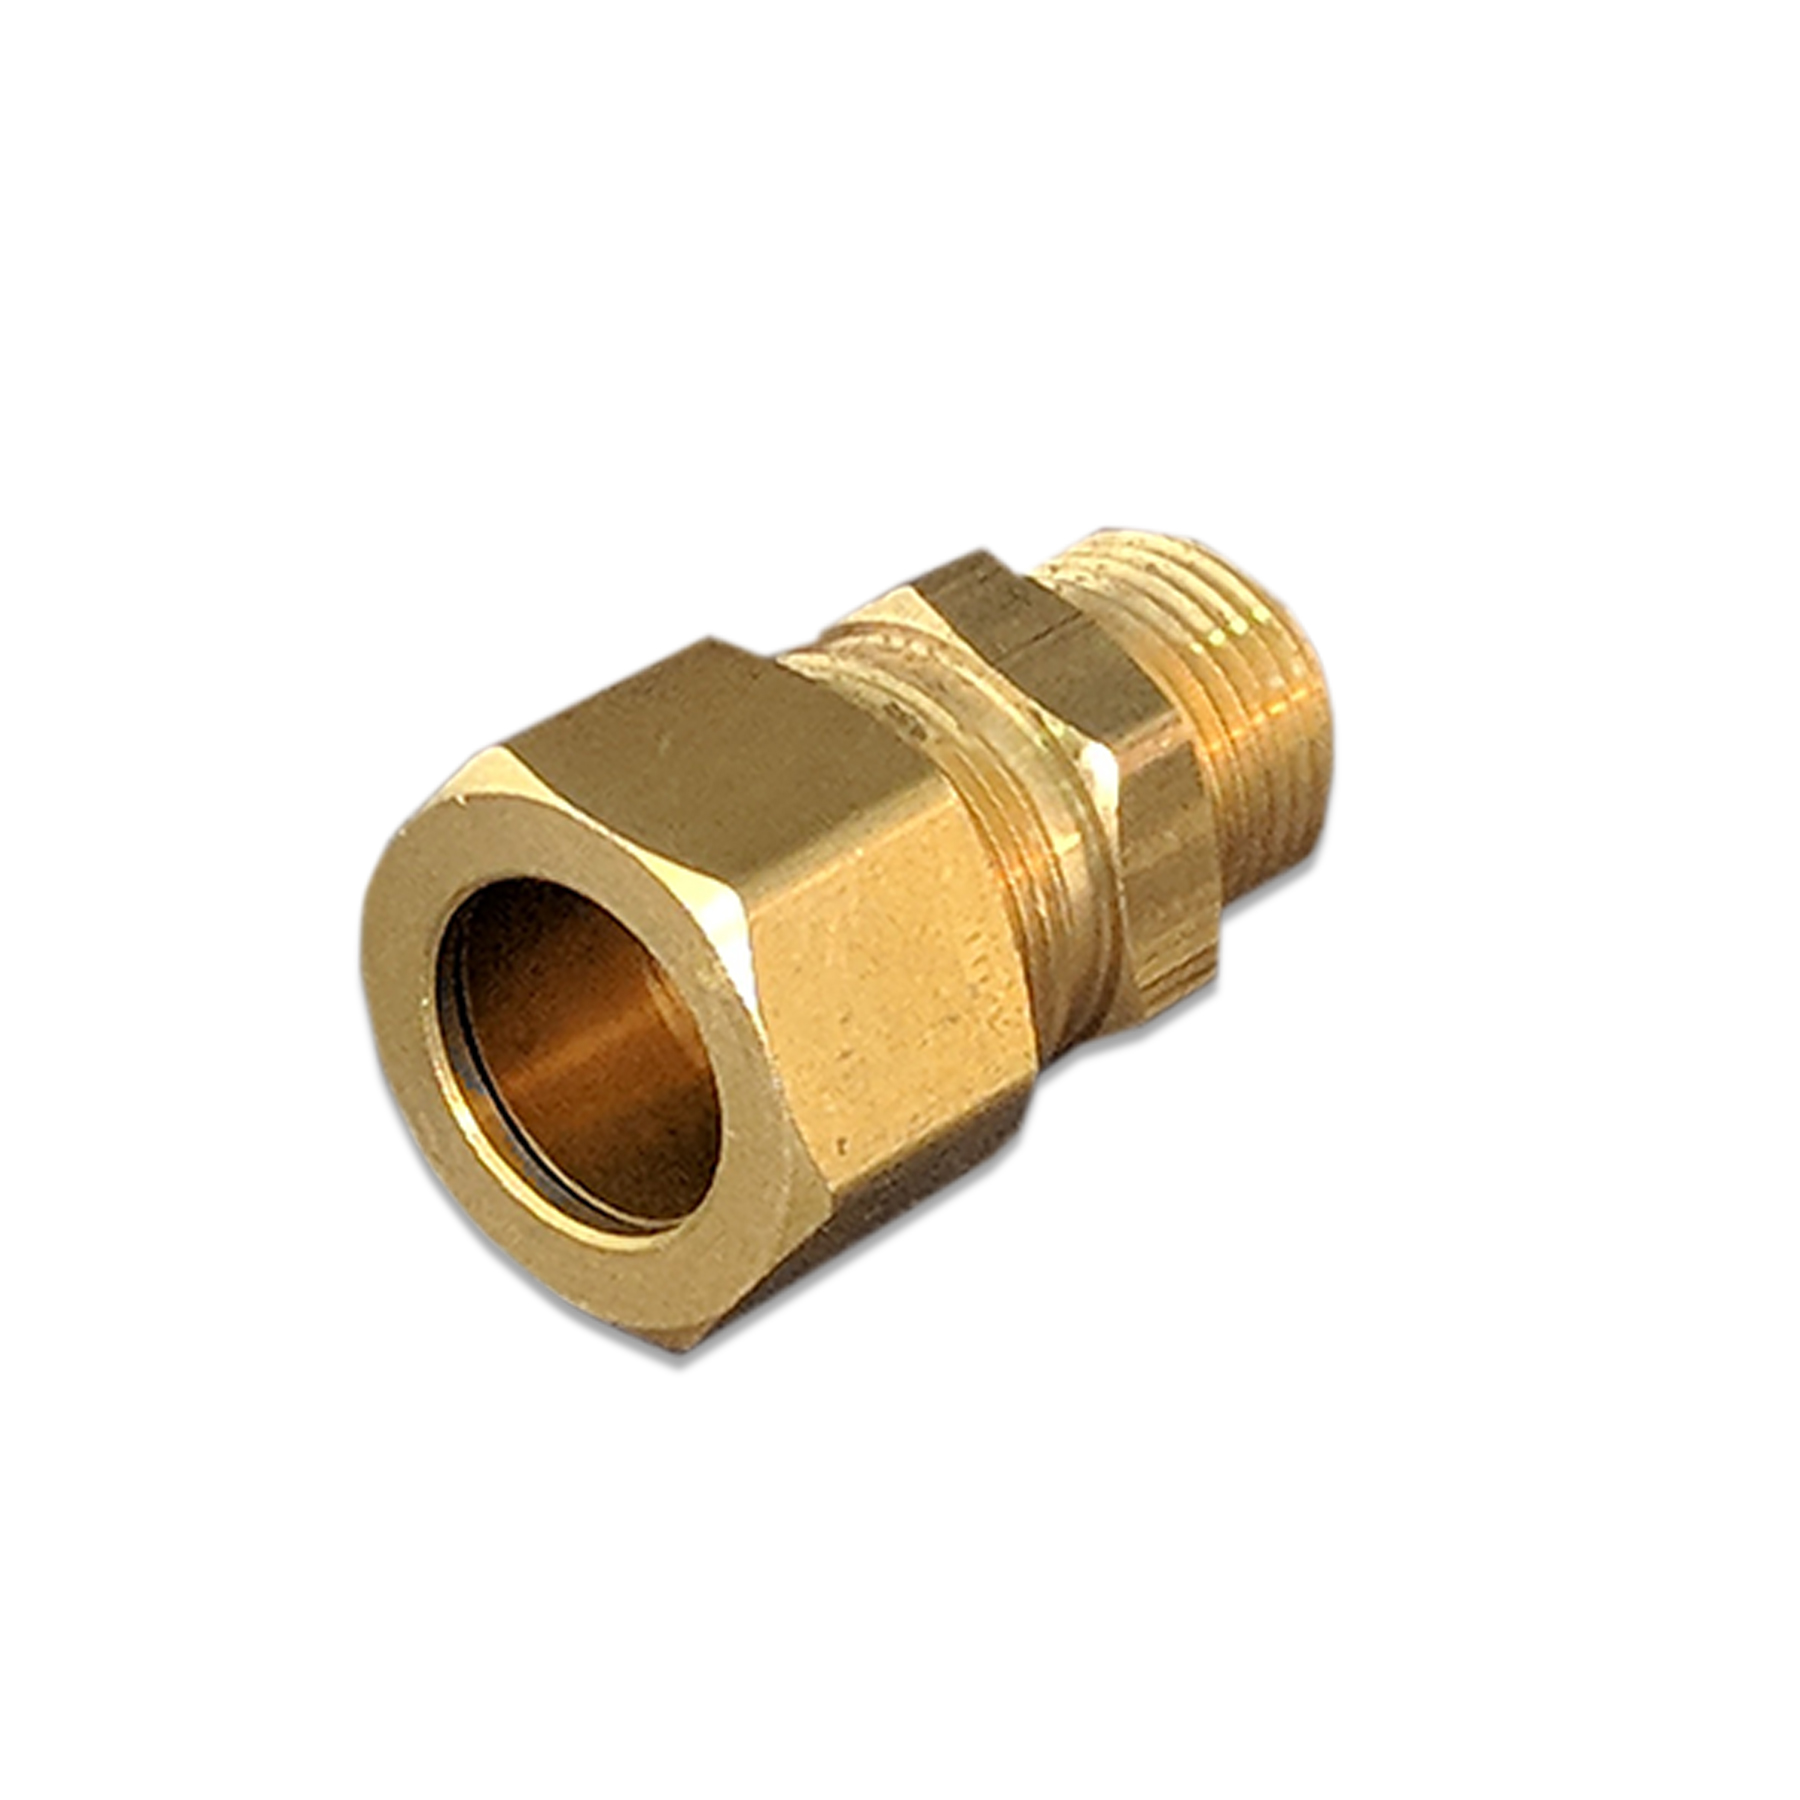 Brass Compression Fitting, 5/8 in. PEX x 1/2 in. (M) NPT